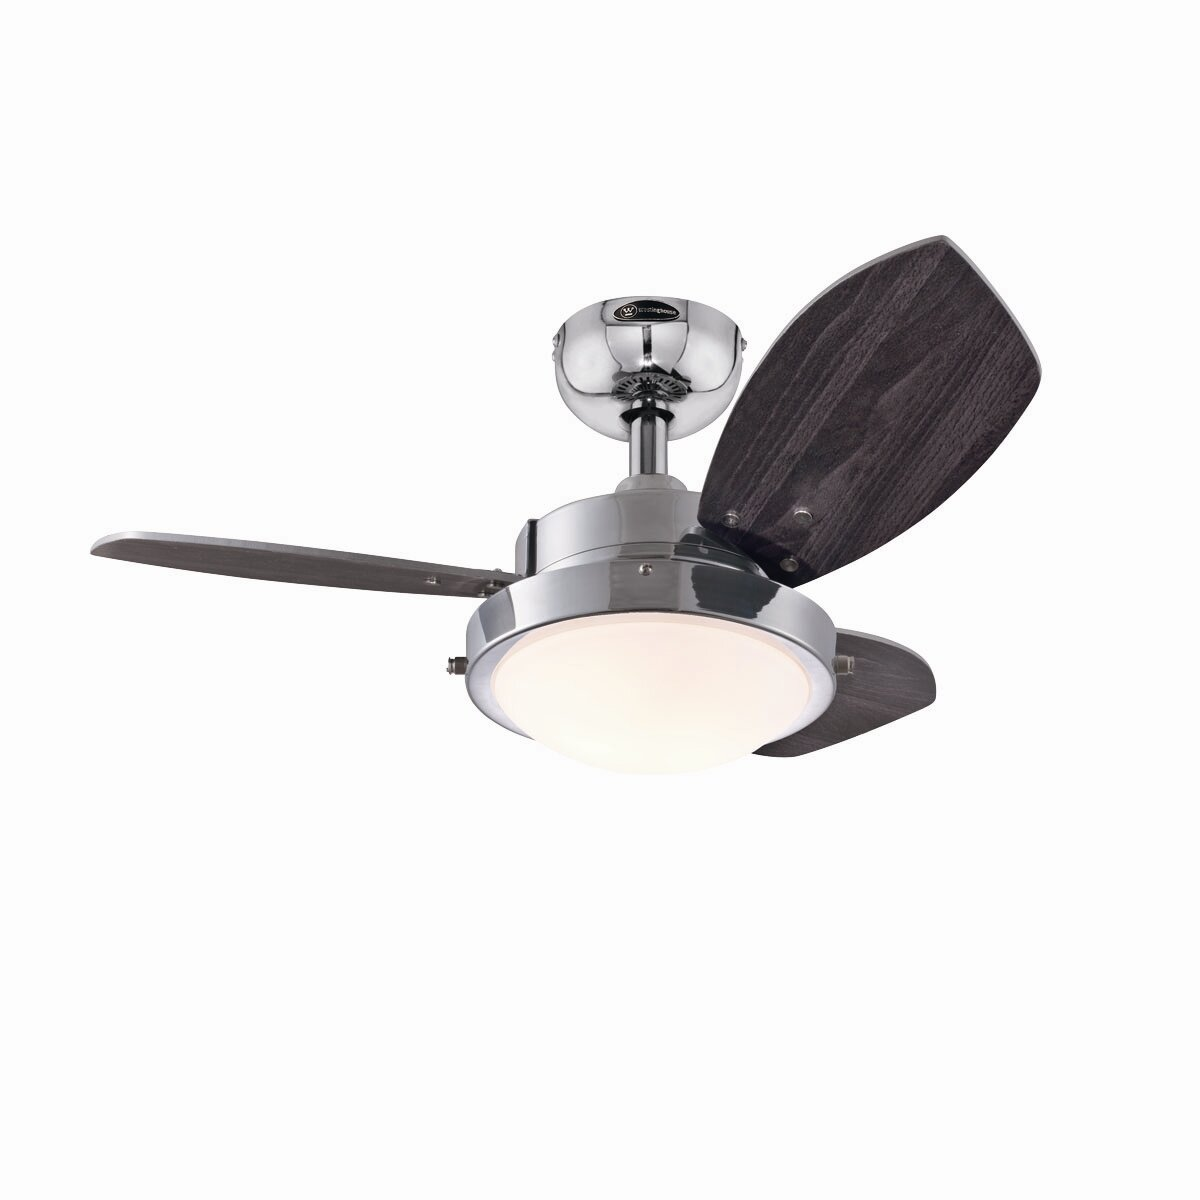 westinghouse lighting 30 wengue 3 blade ceiling fan reviews wayfair. Black Bedroom Furniture Sets. Home Design Ideas